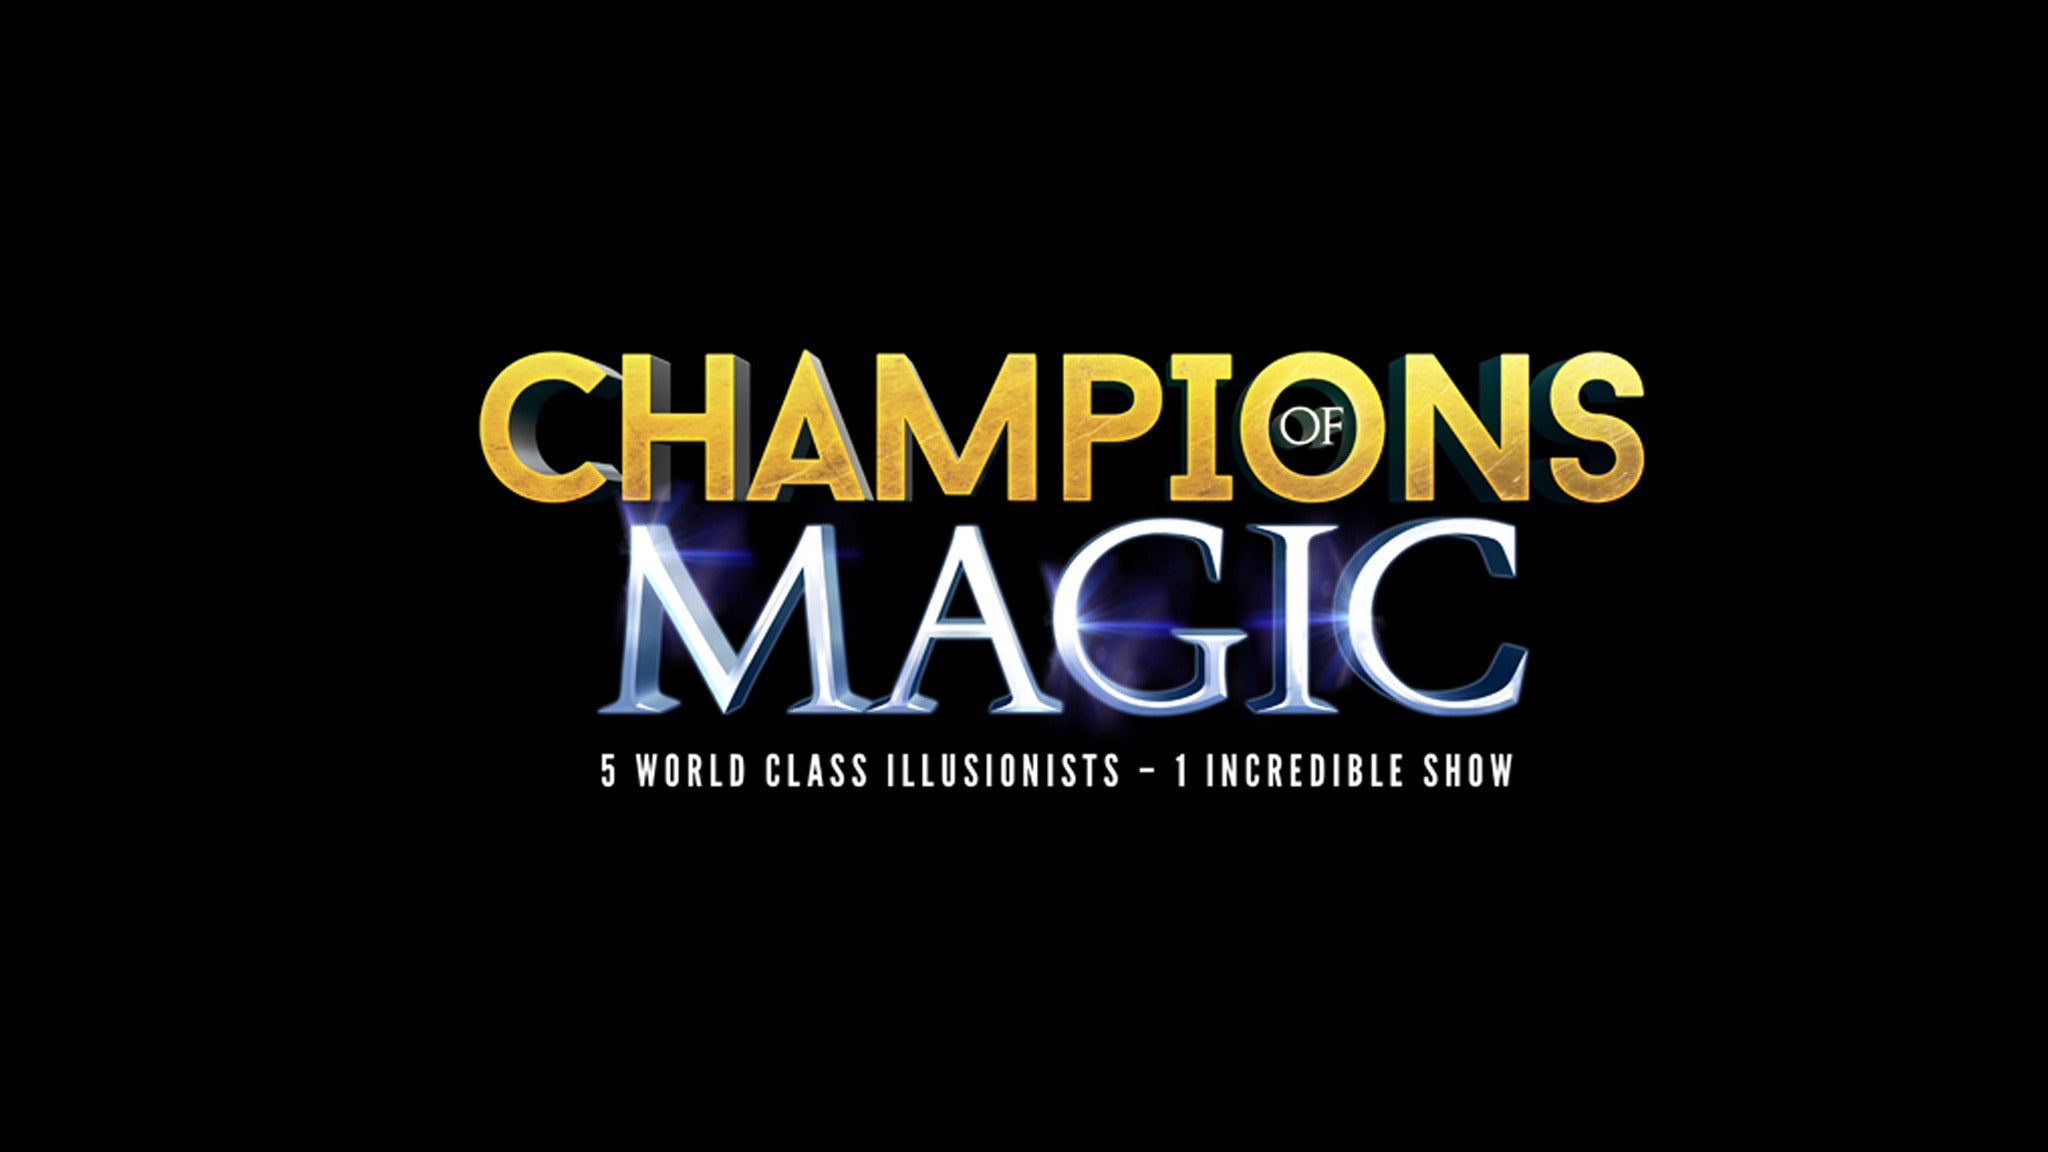 Champions of Magic at State Theatre - Minneapolis, MN 55402